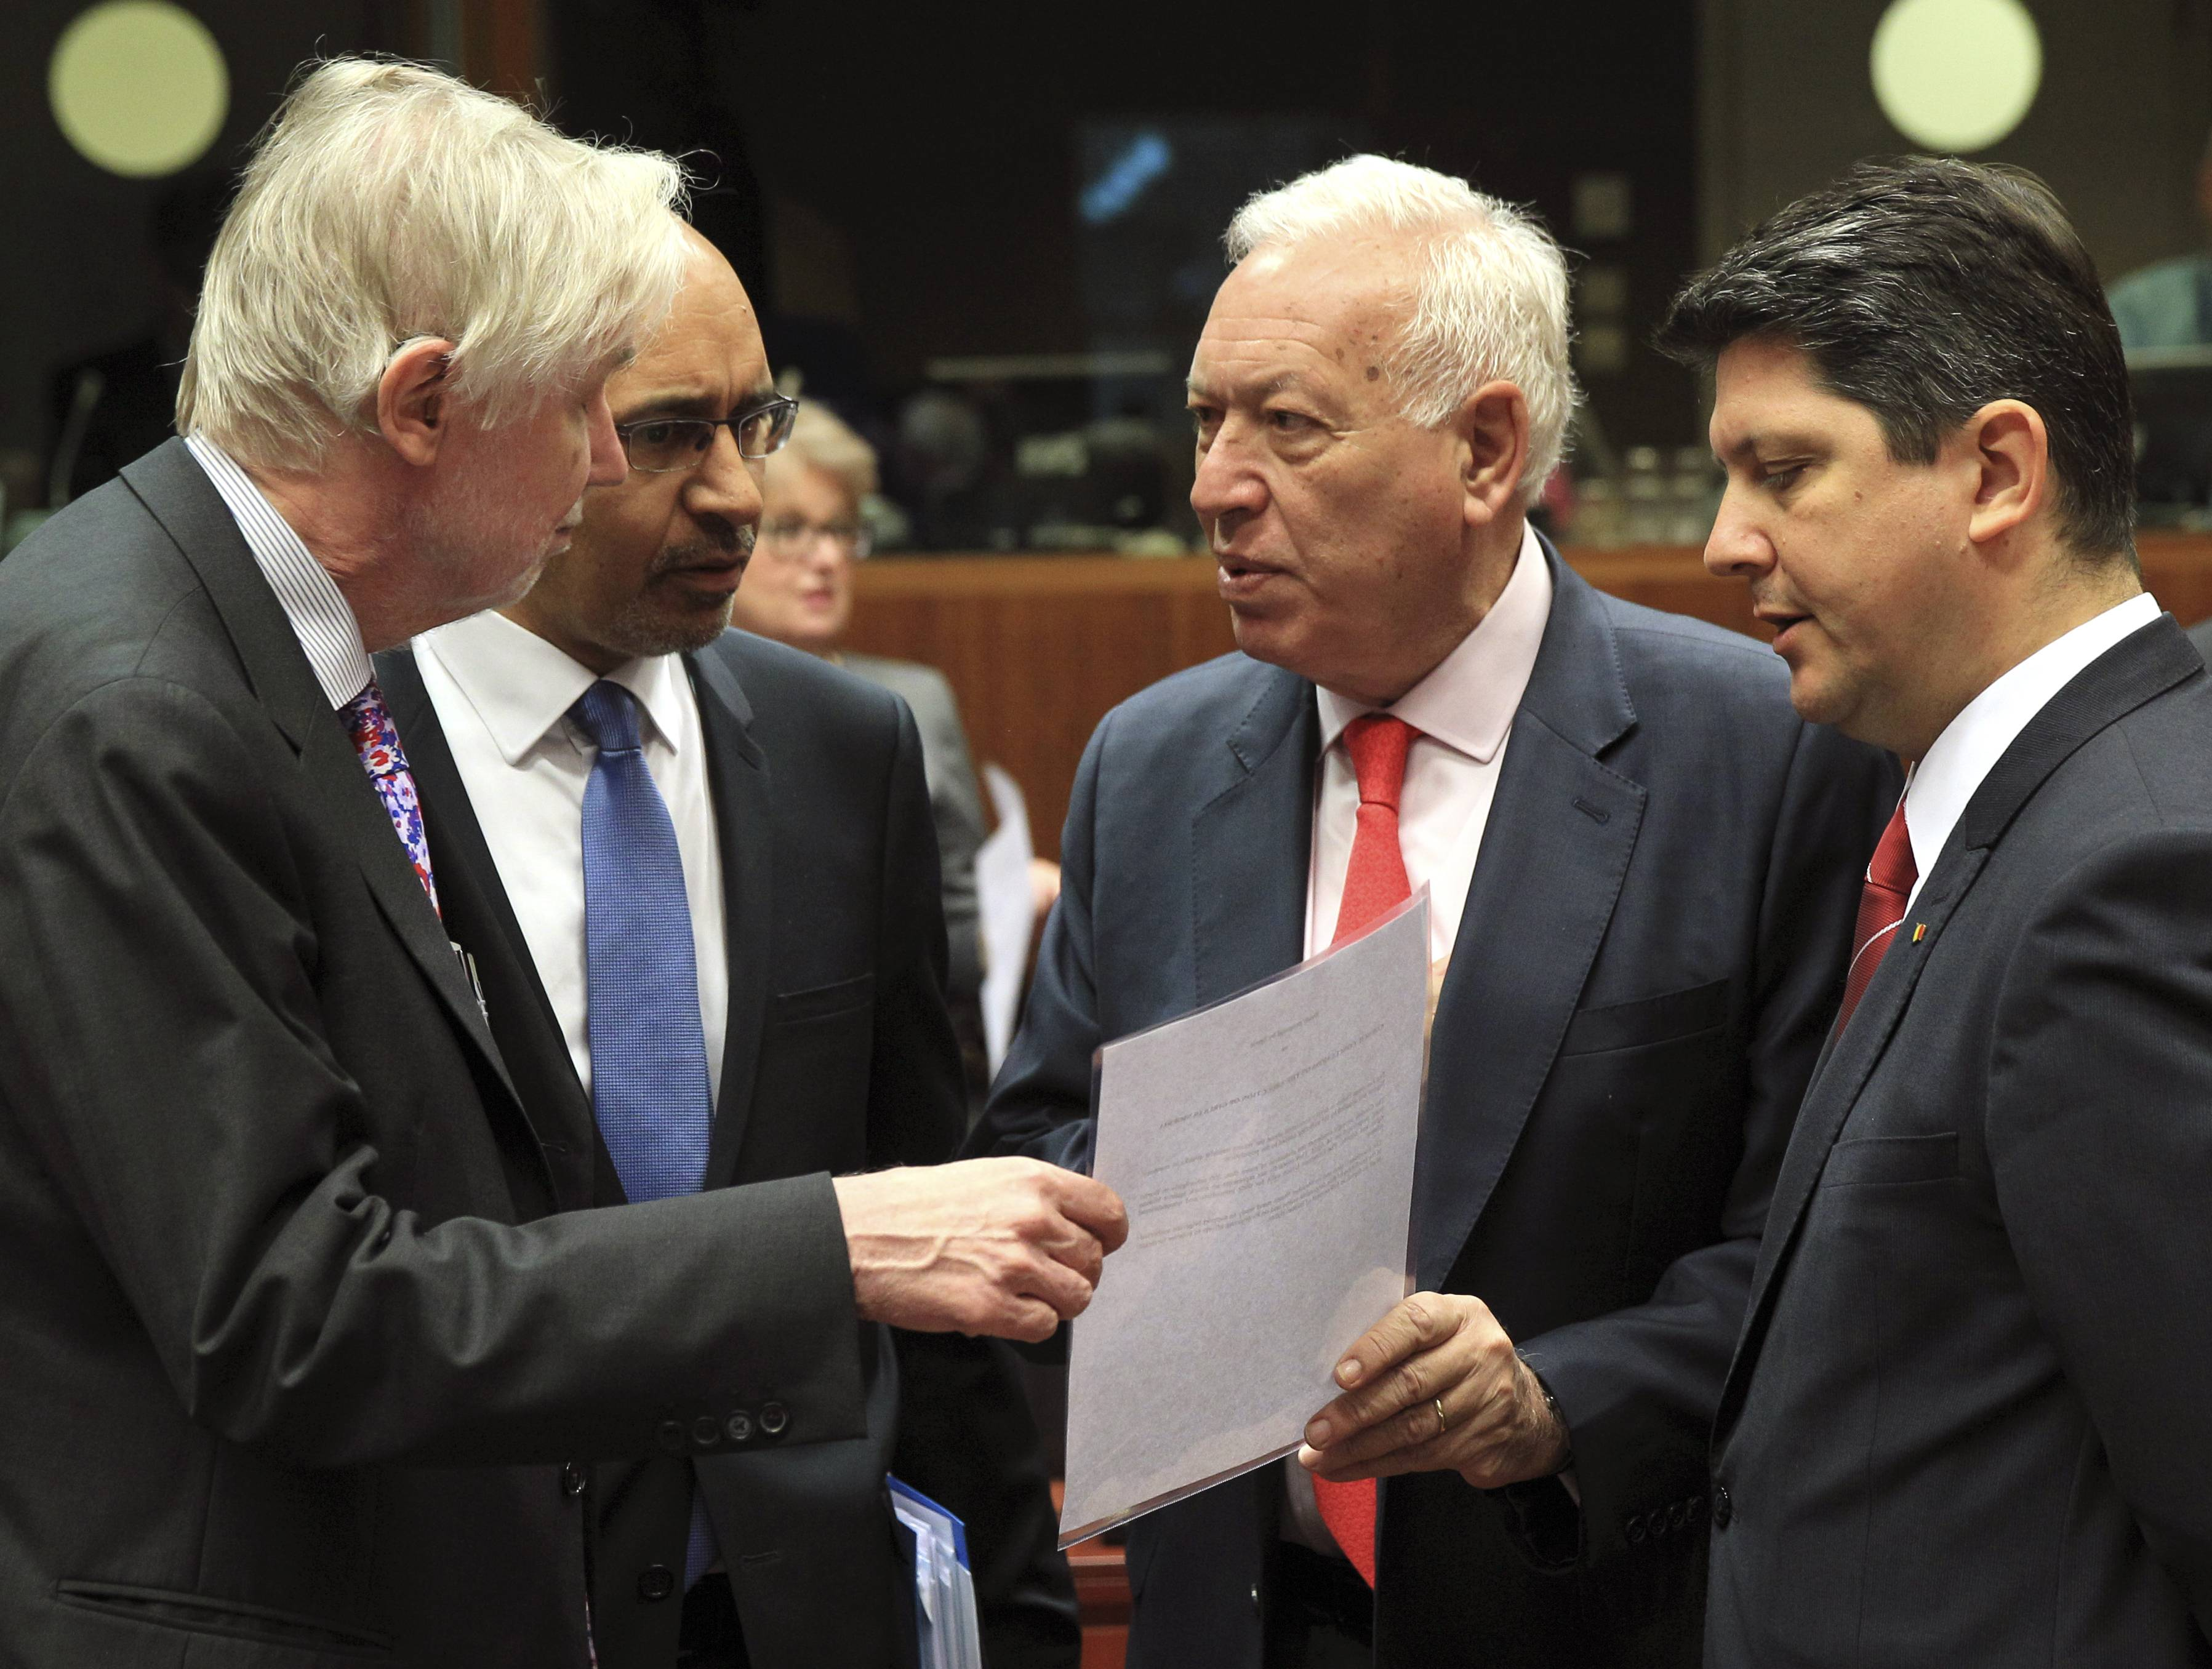 Spain's Foreign Minister Jose Manuel Garcia-Margallo y Marfil, second right, talks with Finland's Foreign Minister Erkki Sakari Tuomioja, left, French Secretary of State for European Affairs Harlem Desir, second left, and Romania's Foreign Minister Titus Corlatean during an EU foreign ministers meeting at the European Council building in Brussels Monday.